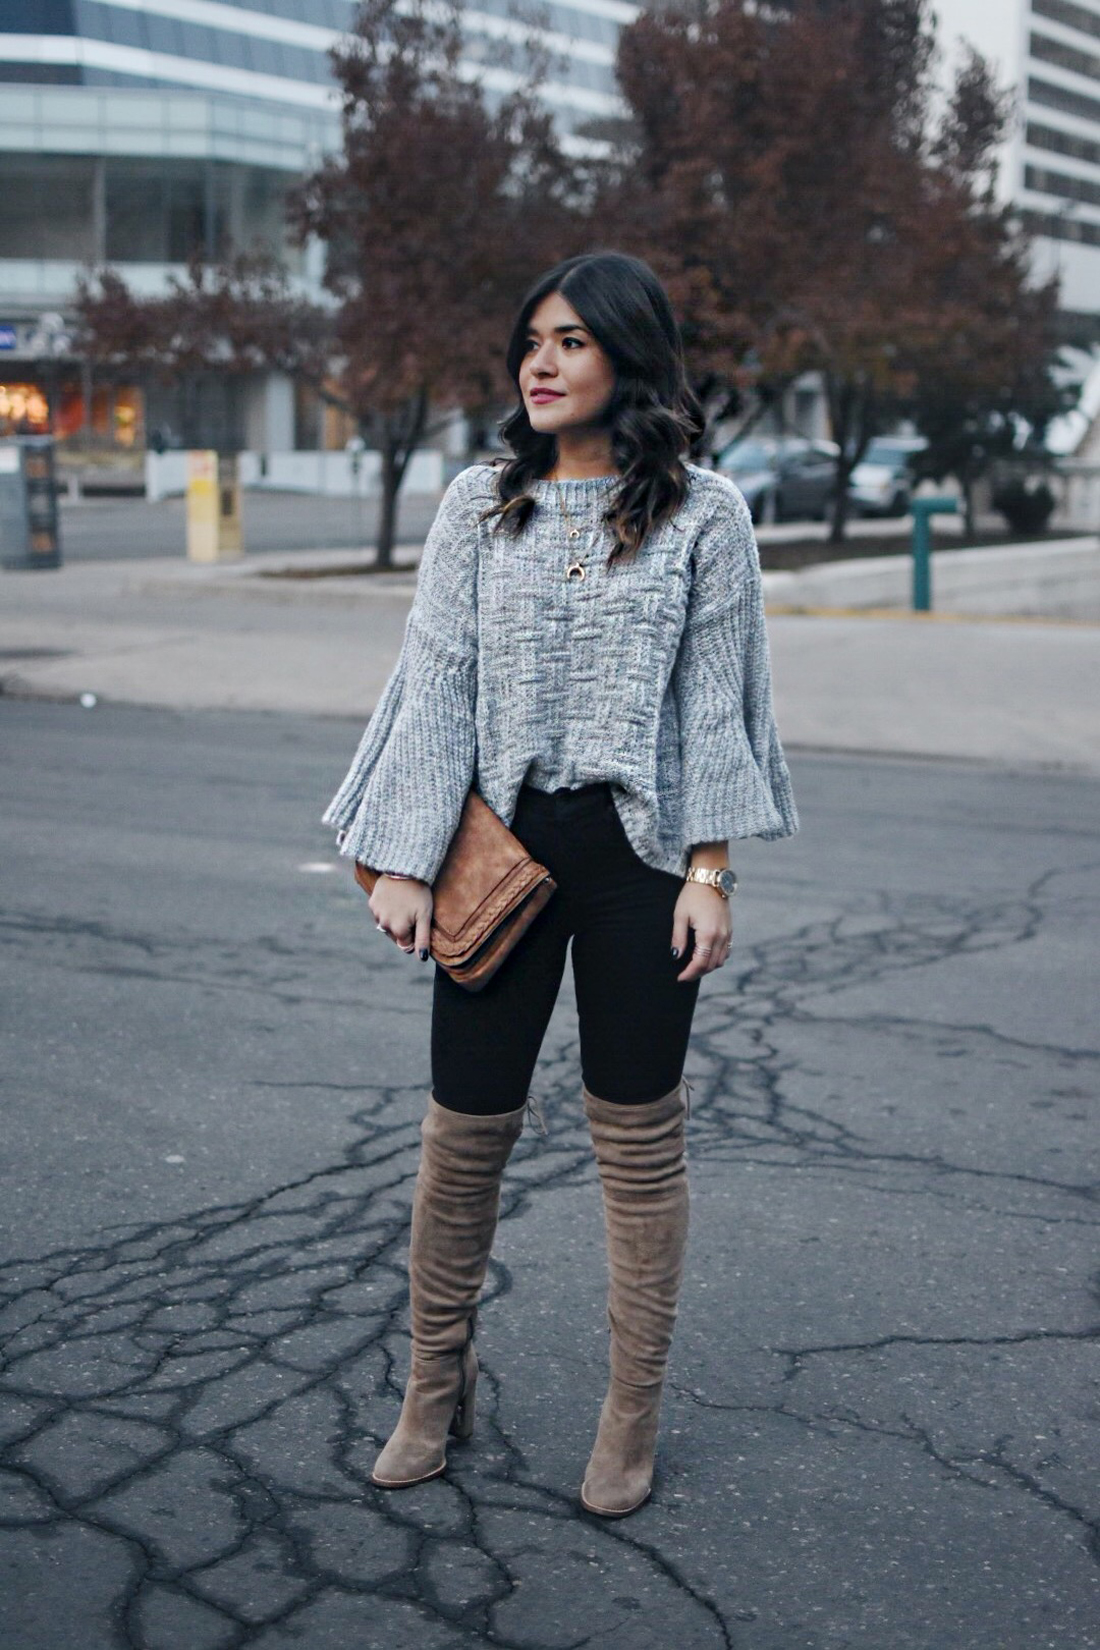 Carolina Hellal of Chic Talk wearing  Shein Grey sweater, black jeans and Vince Camuto over the knee boots.